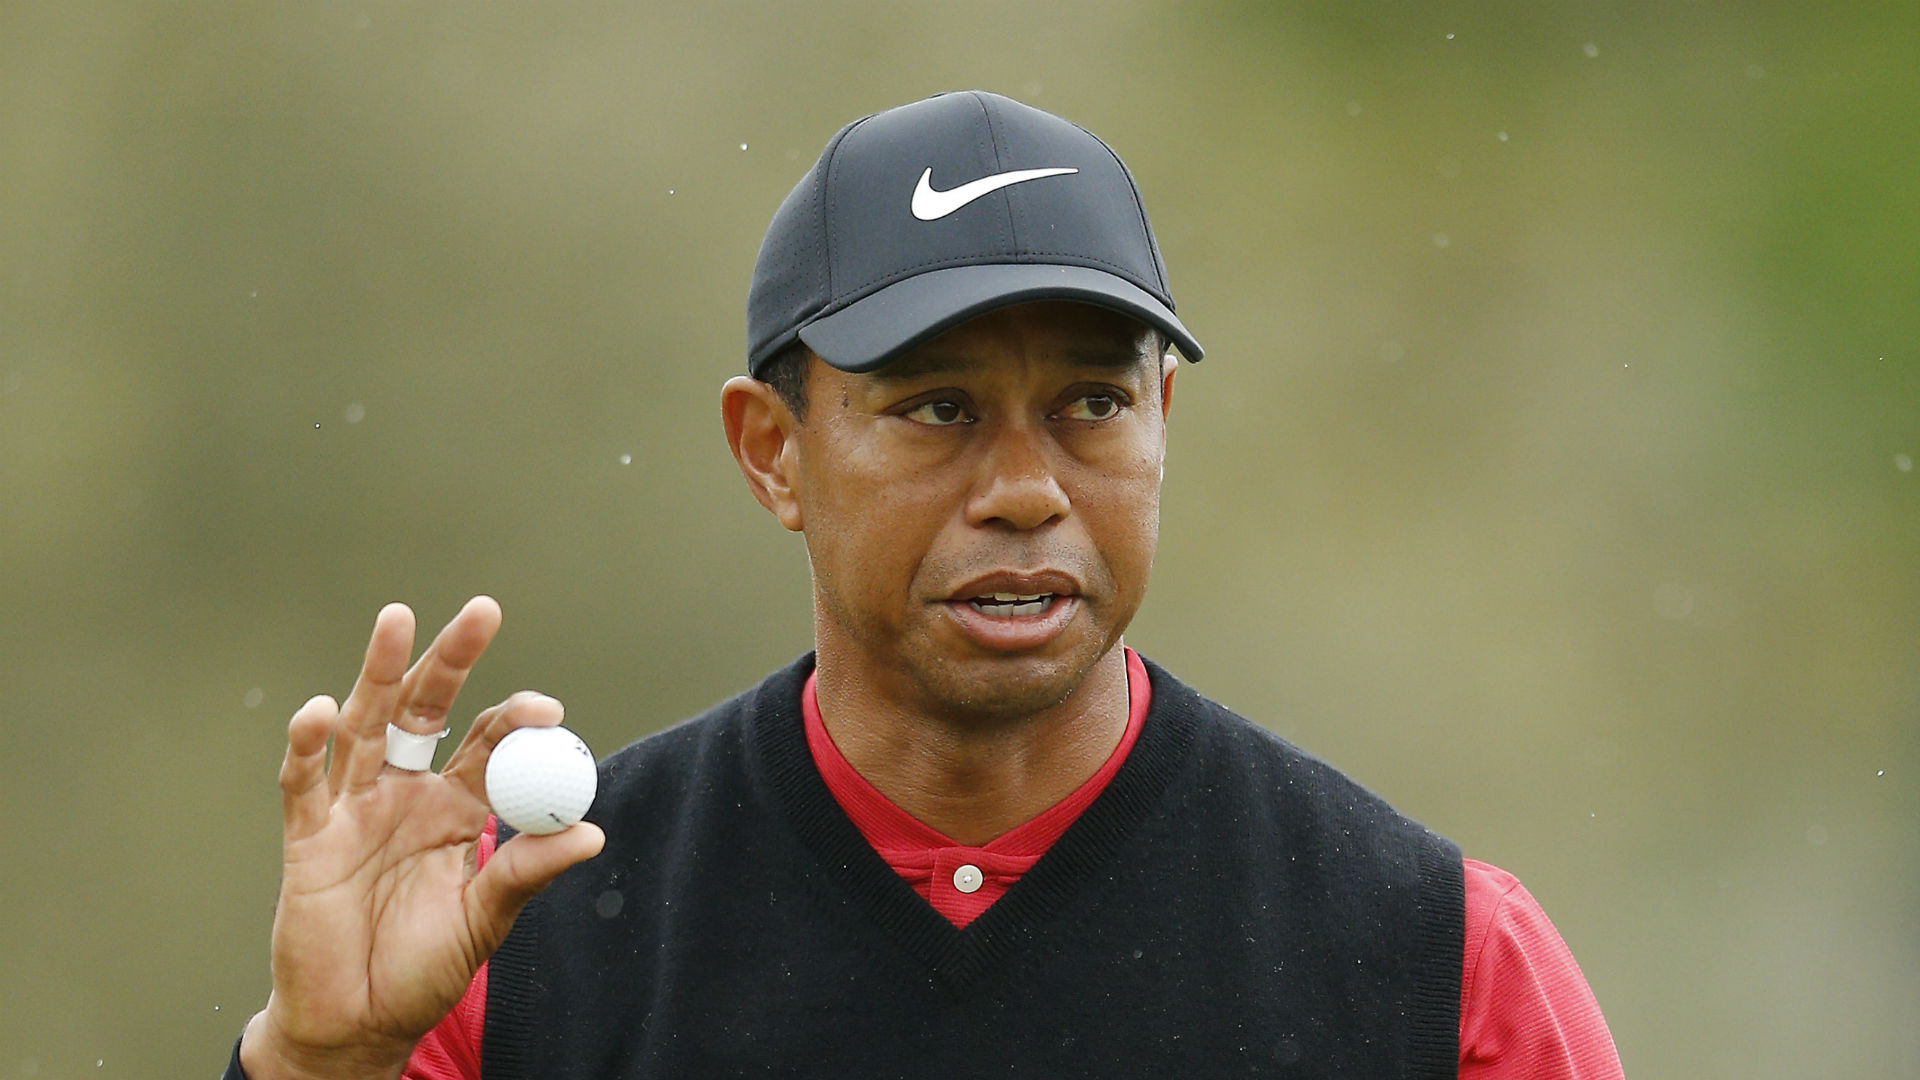 Tiger Woods in hospital: Golf superstar 'very fortunate' to survive car crash